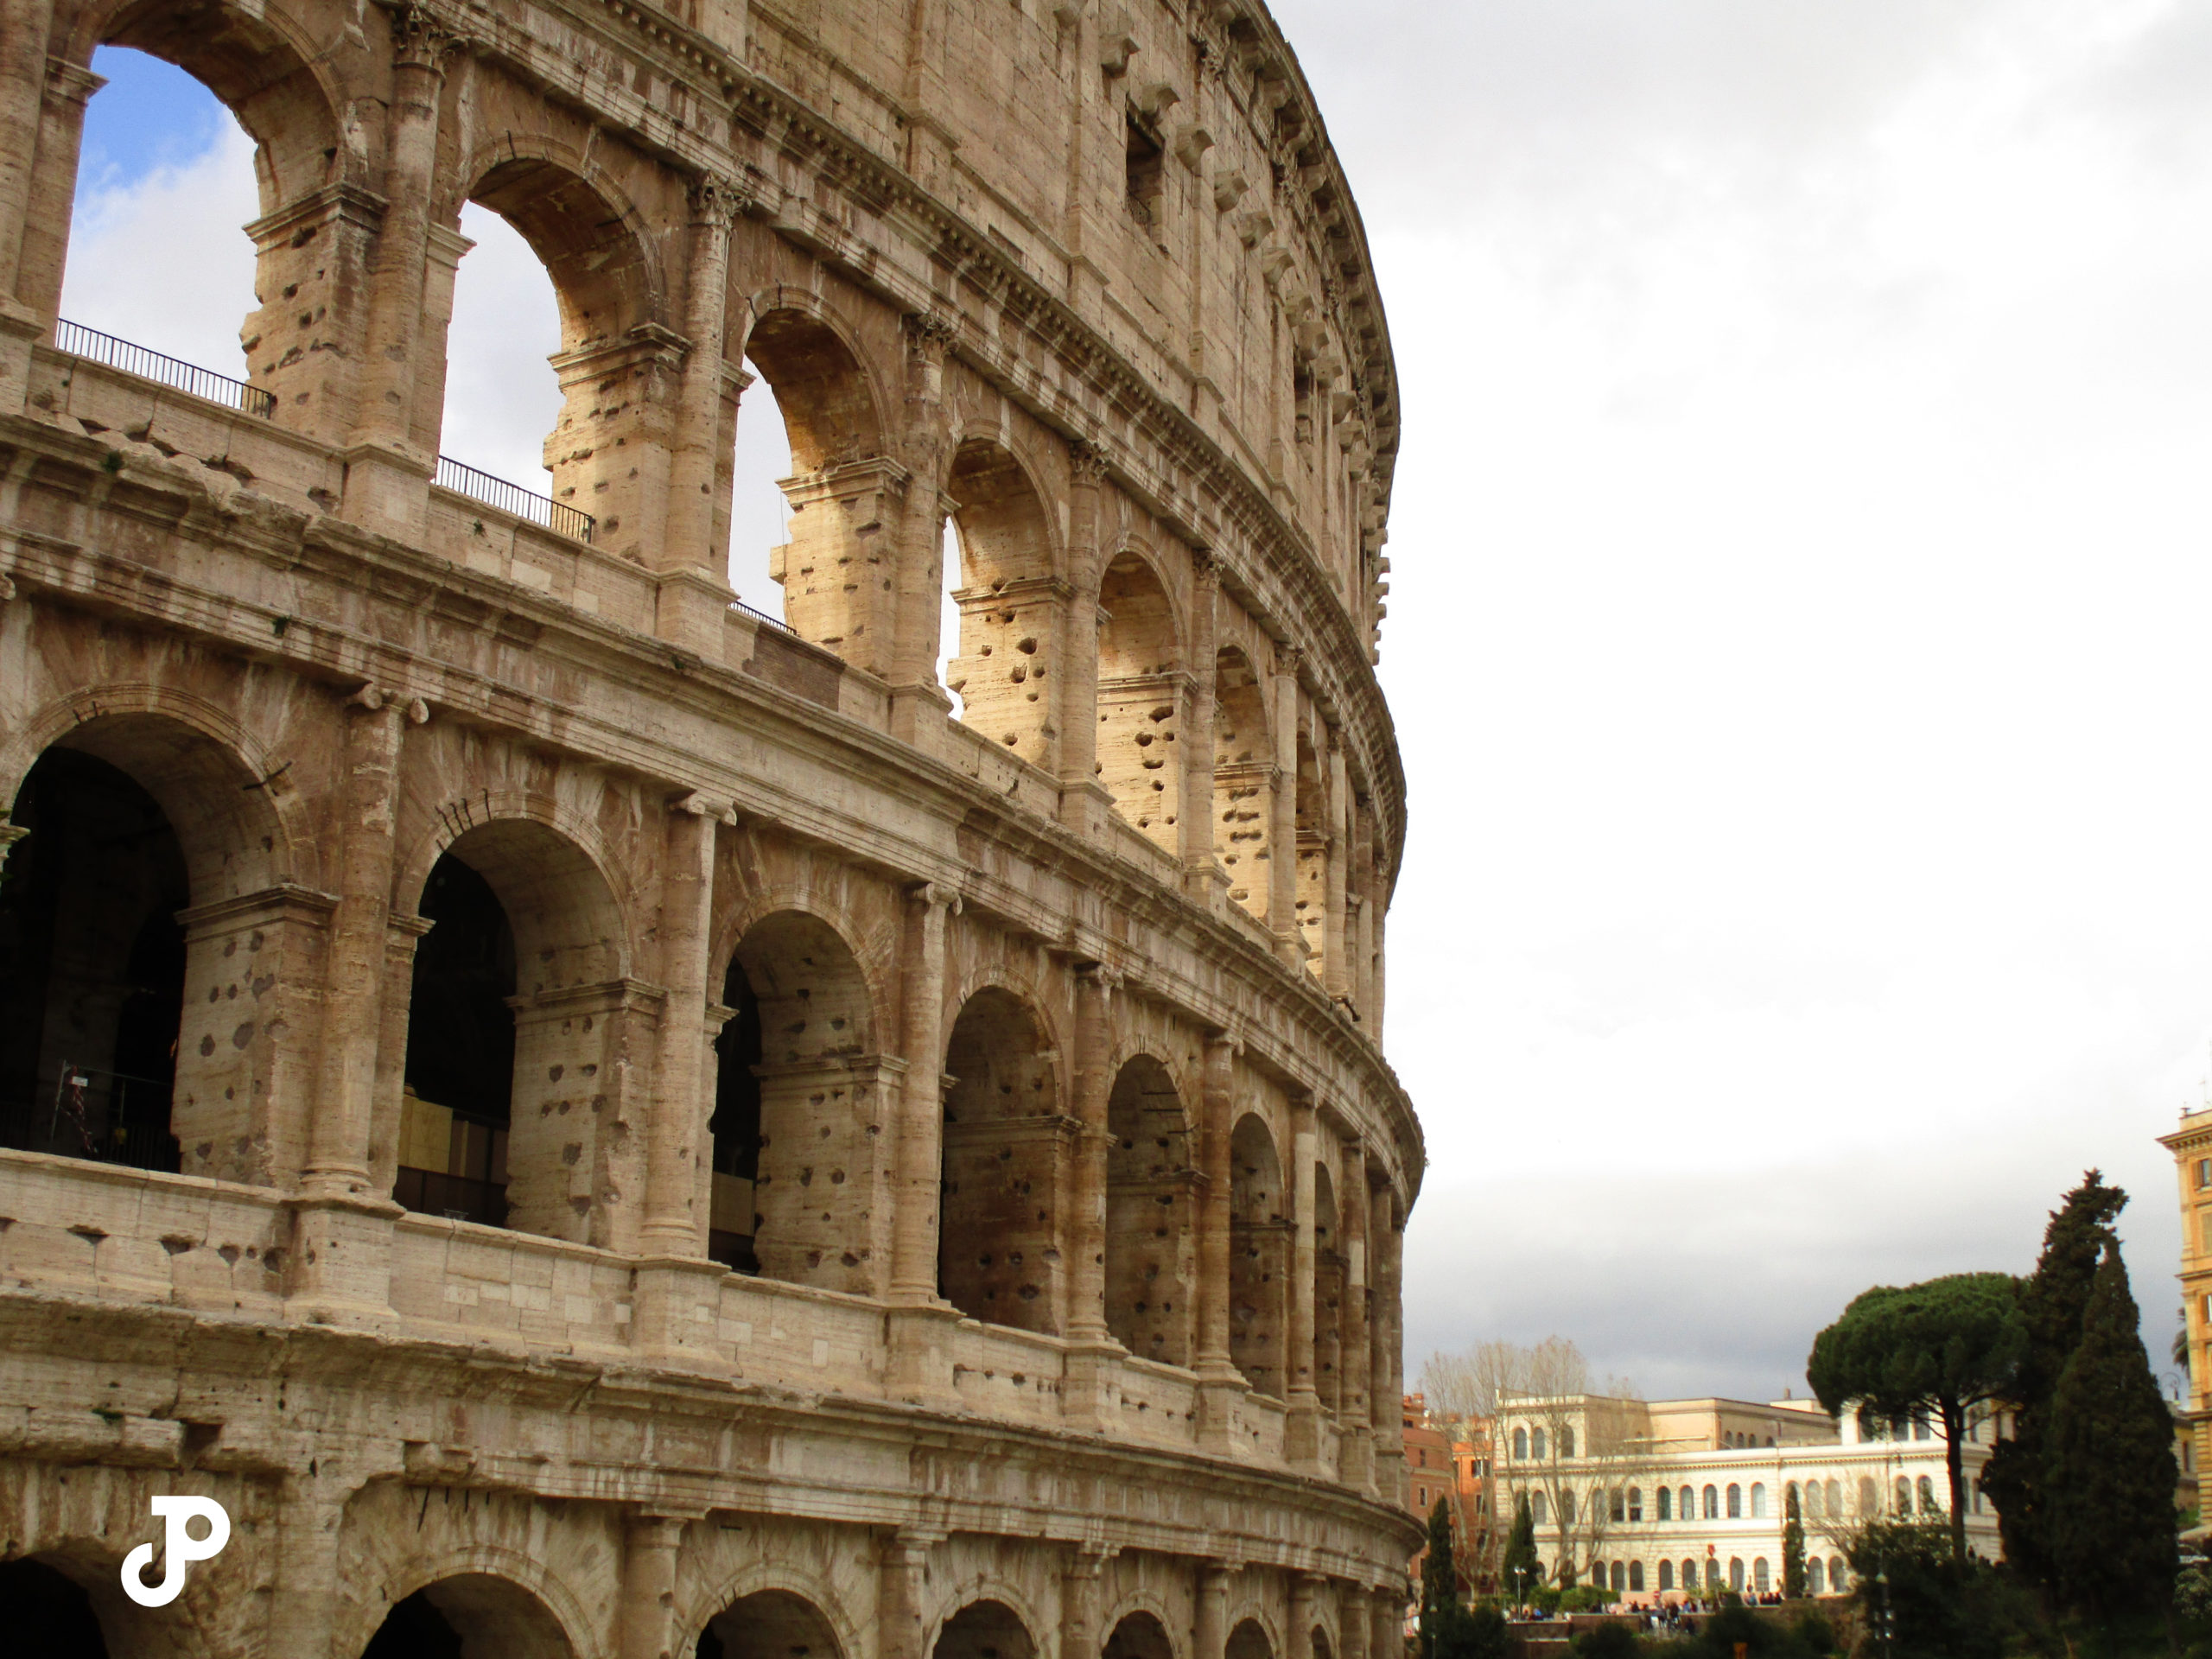 a side view of the Colosseum washed in bright sunlight